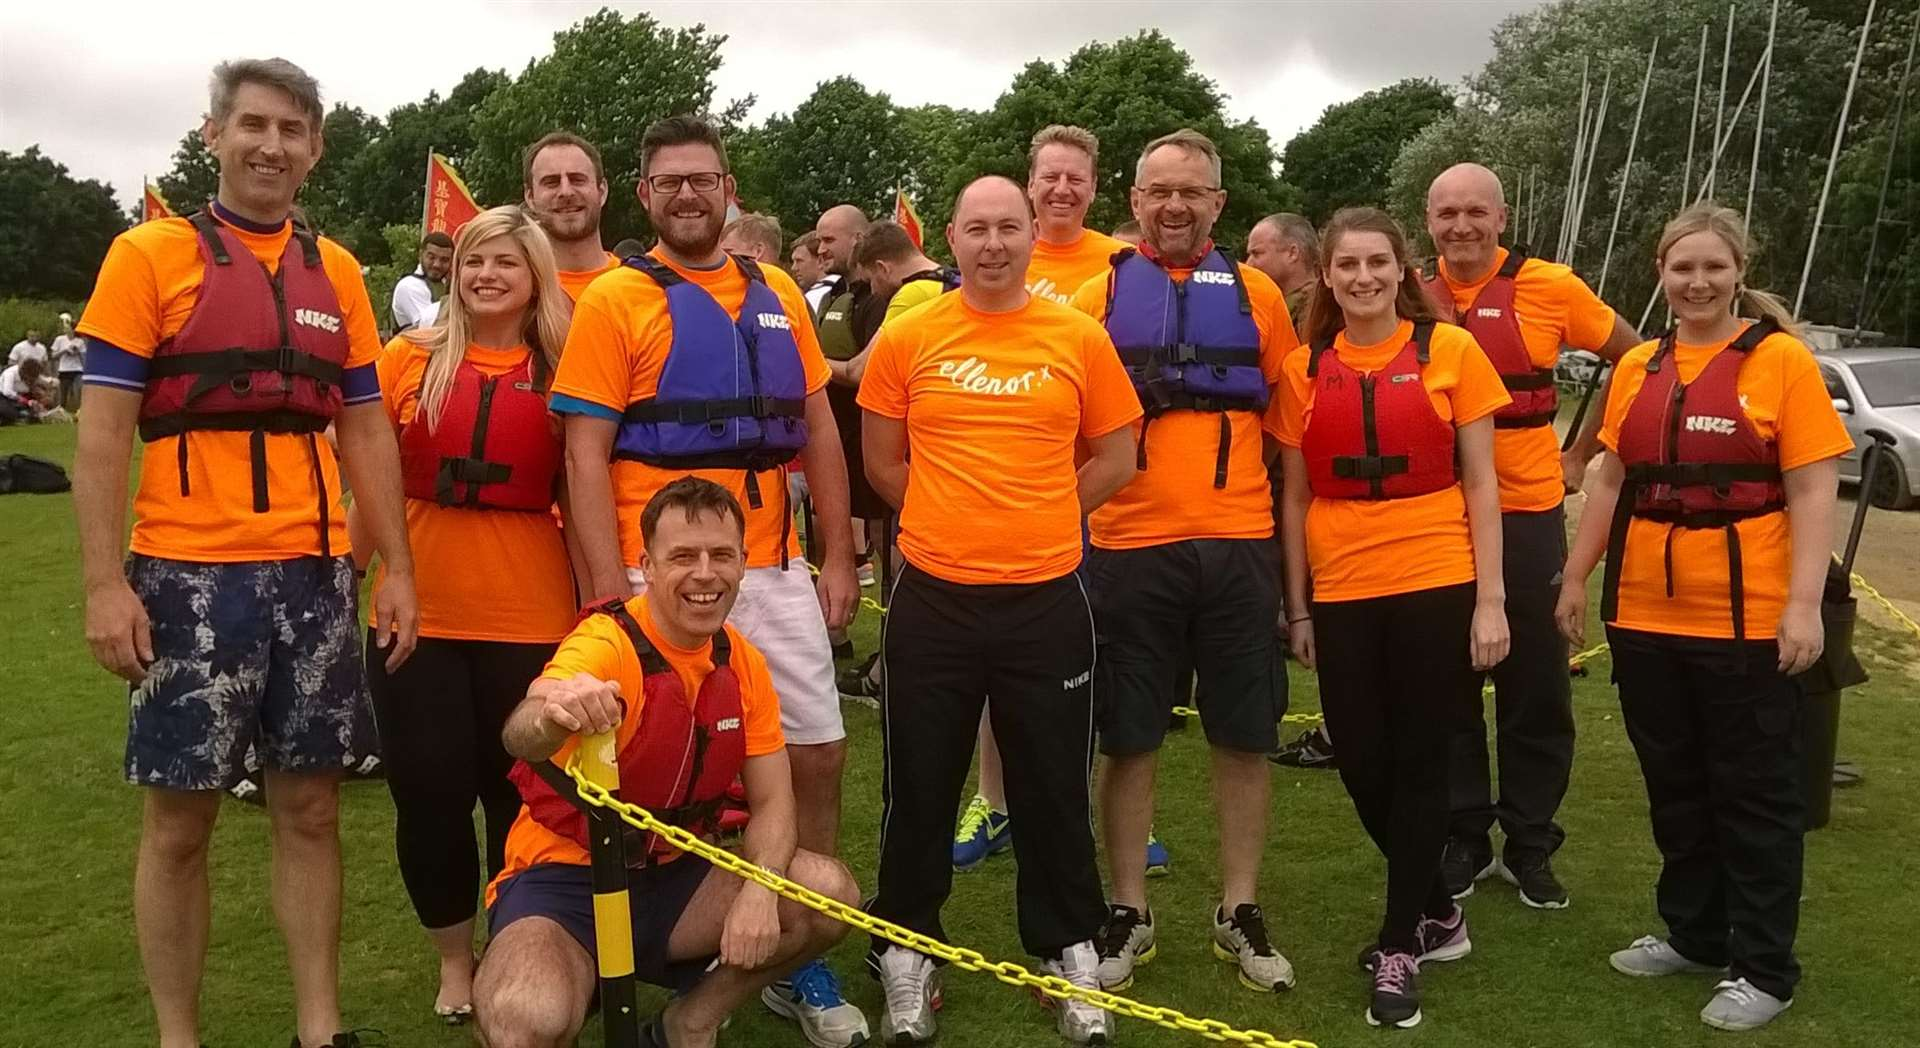 The Berkeley team took part in a Tough Mudder challenge to raise funds for the hospice prior to the lockdown